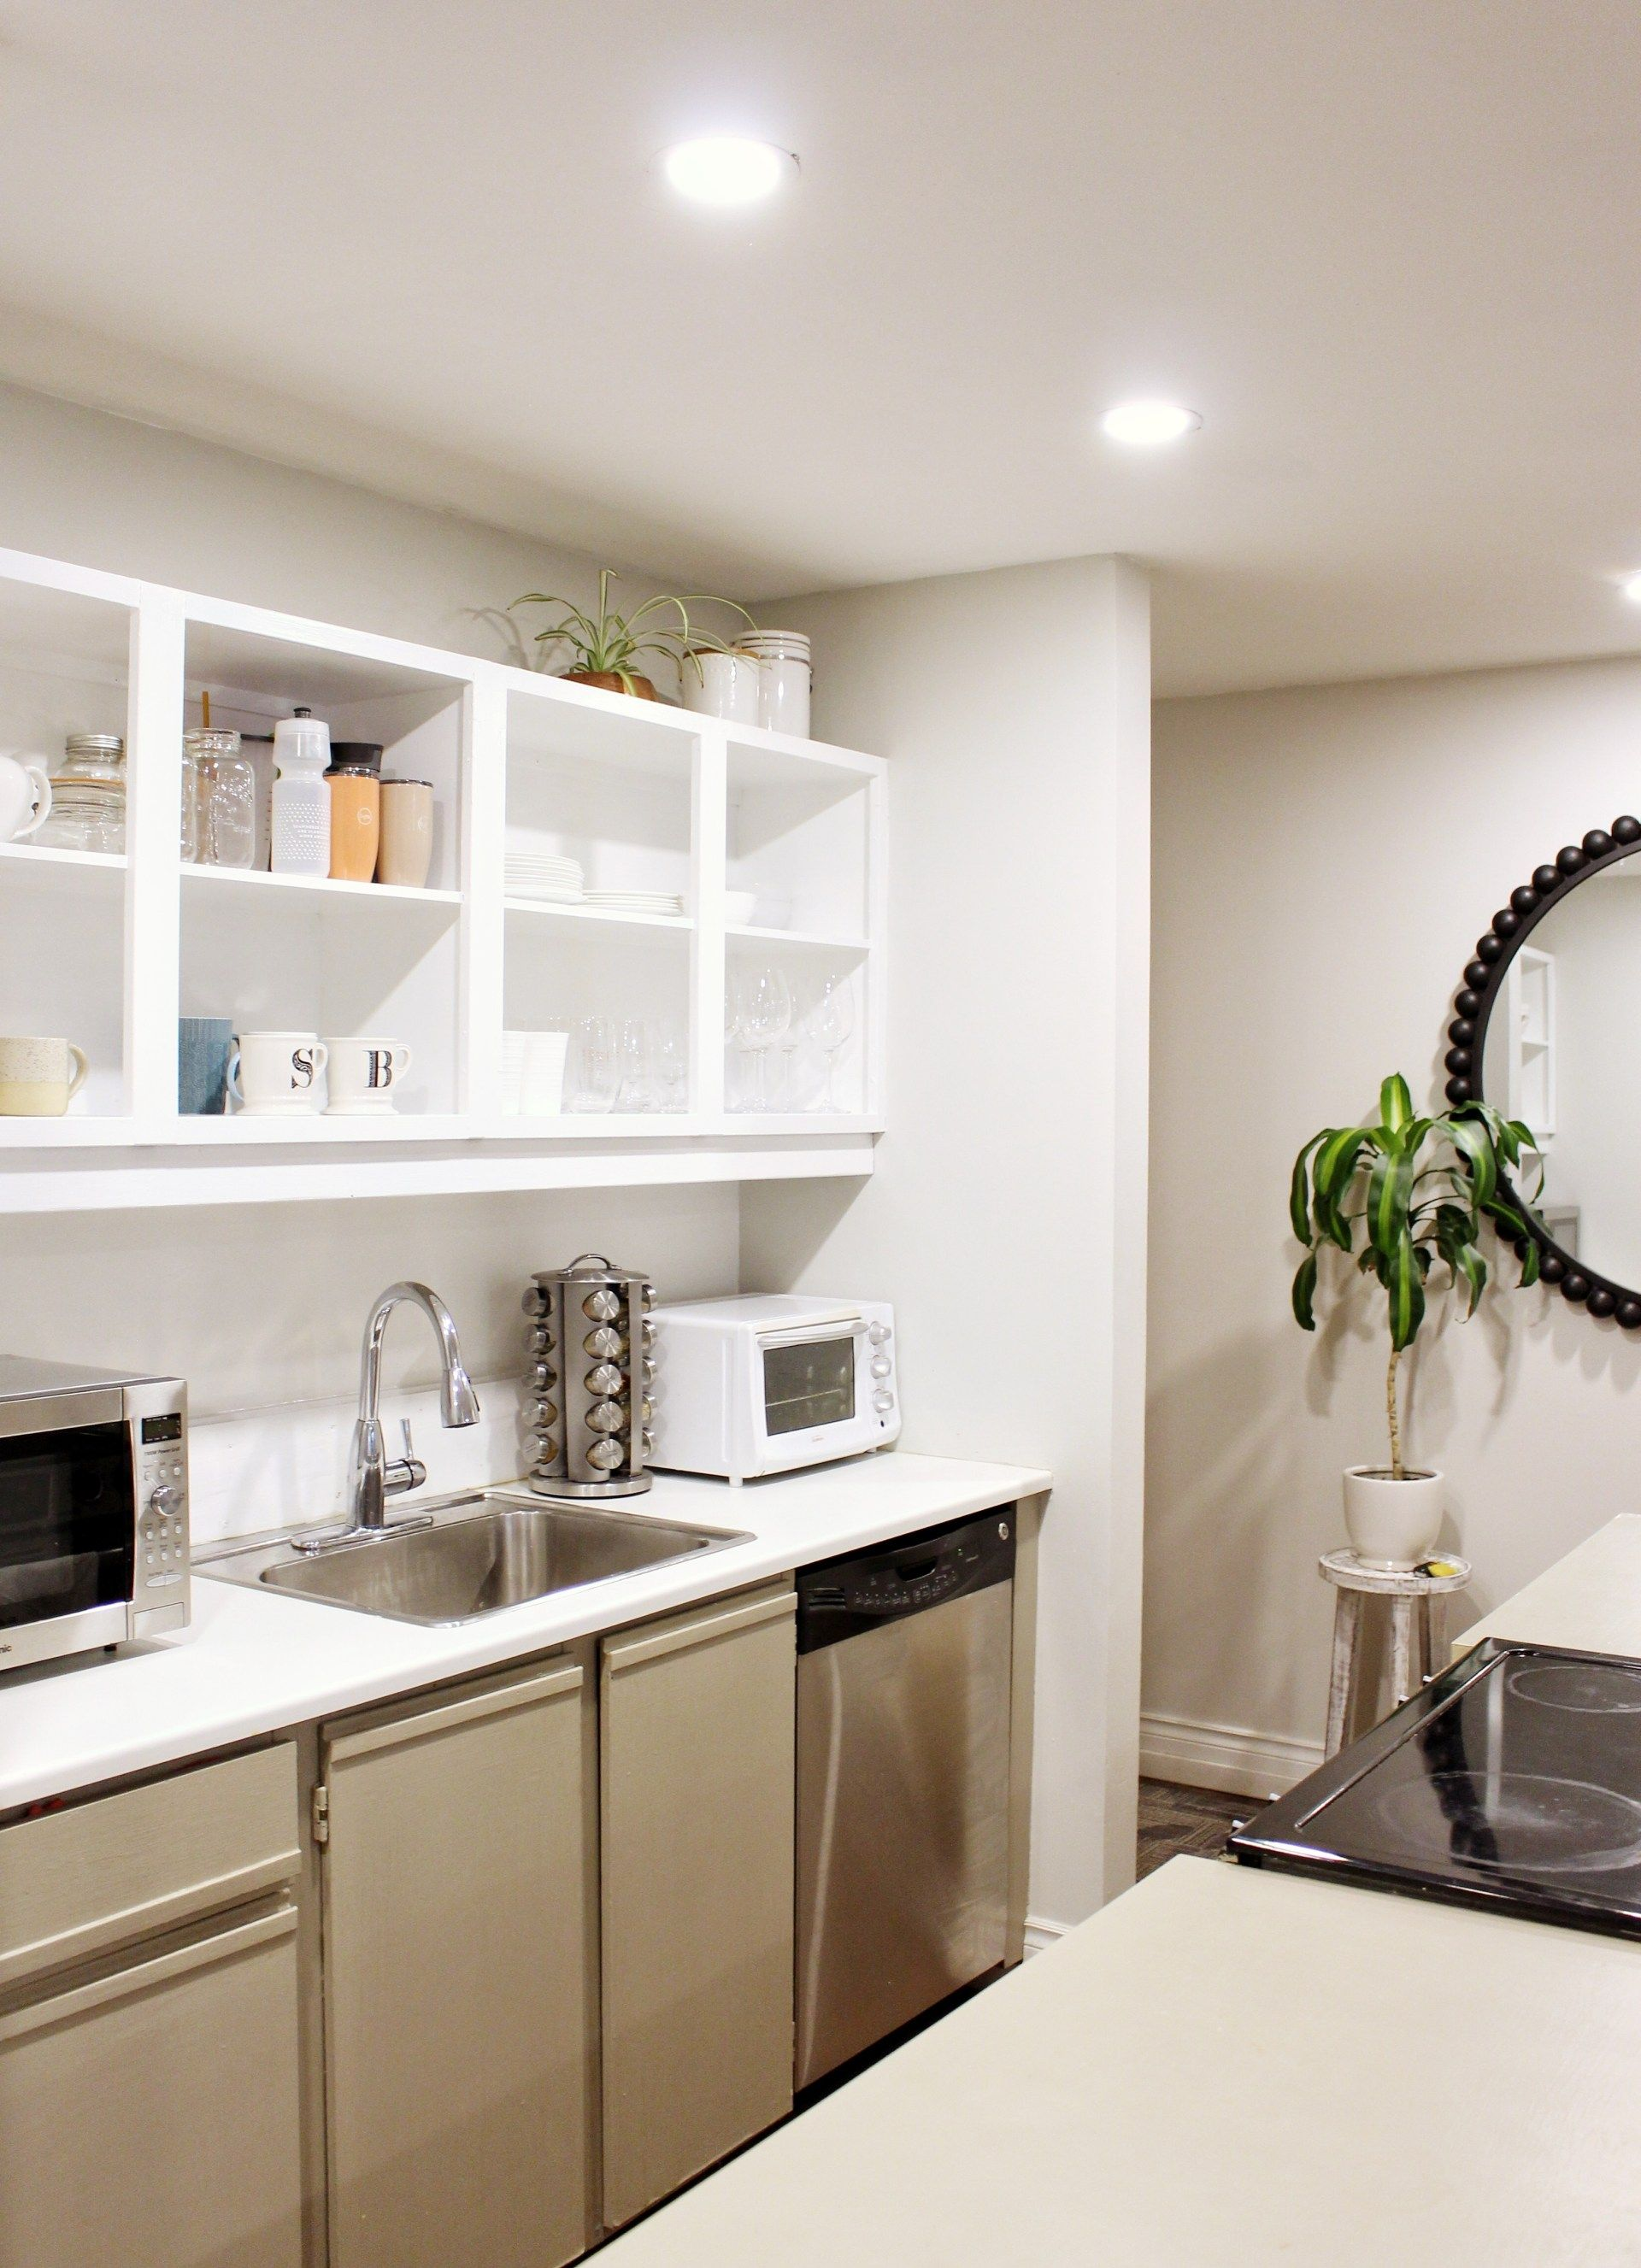 Before And After Kitchen Remodel On A Budget | Trendy home ...